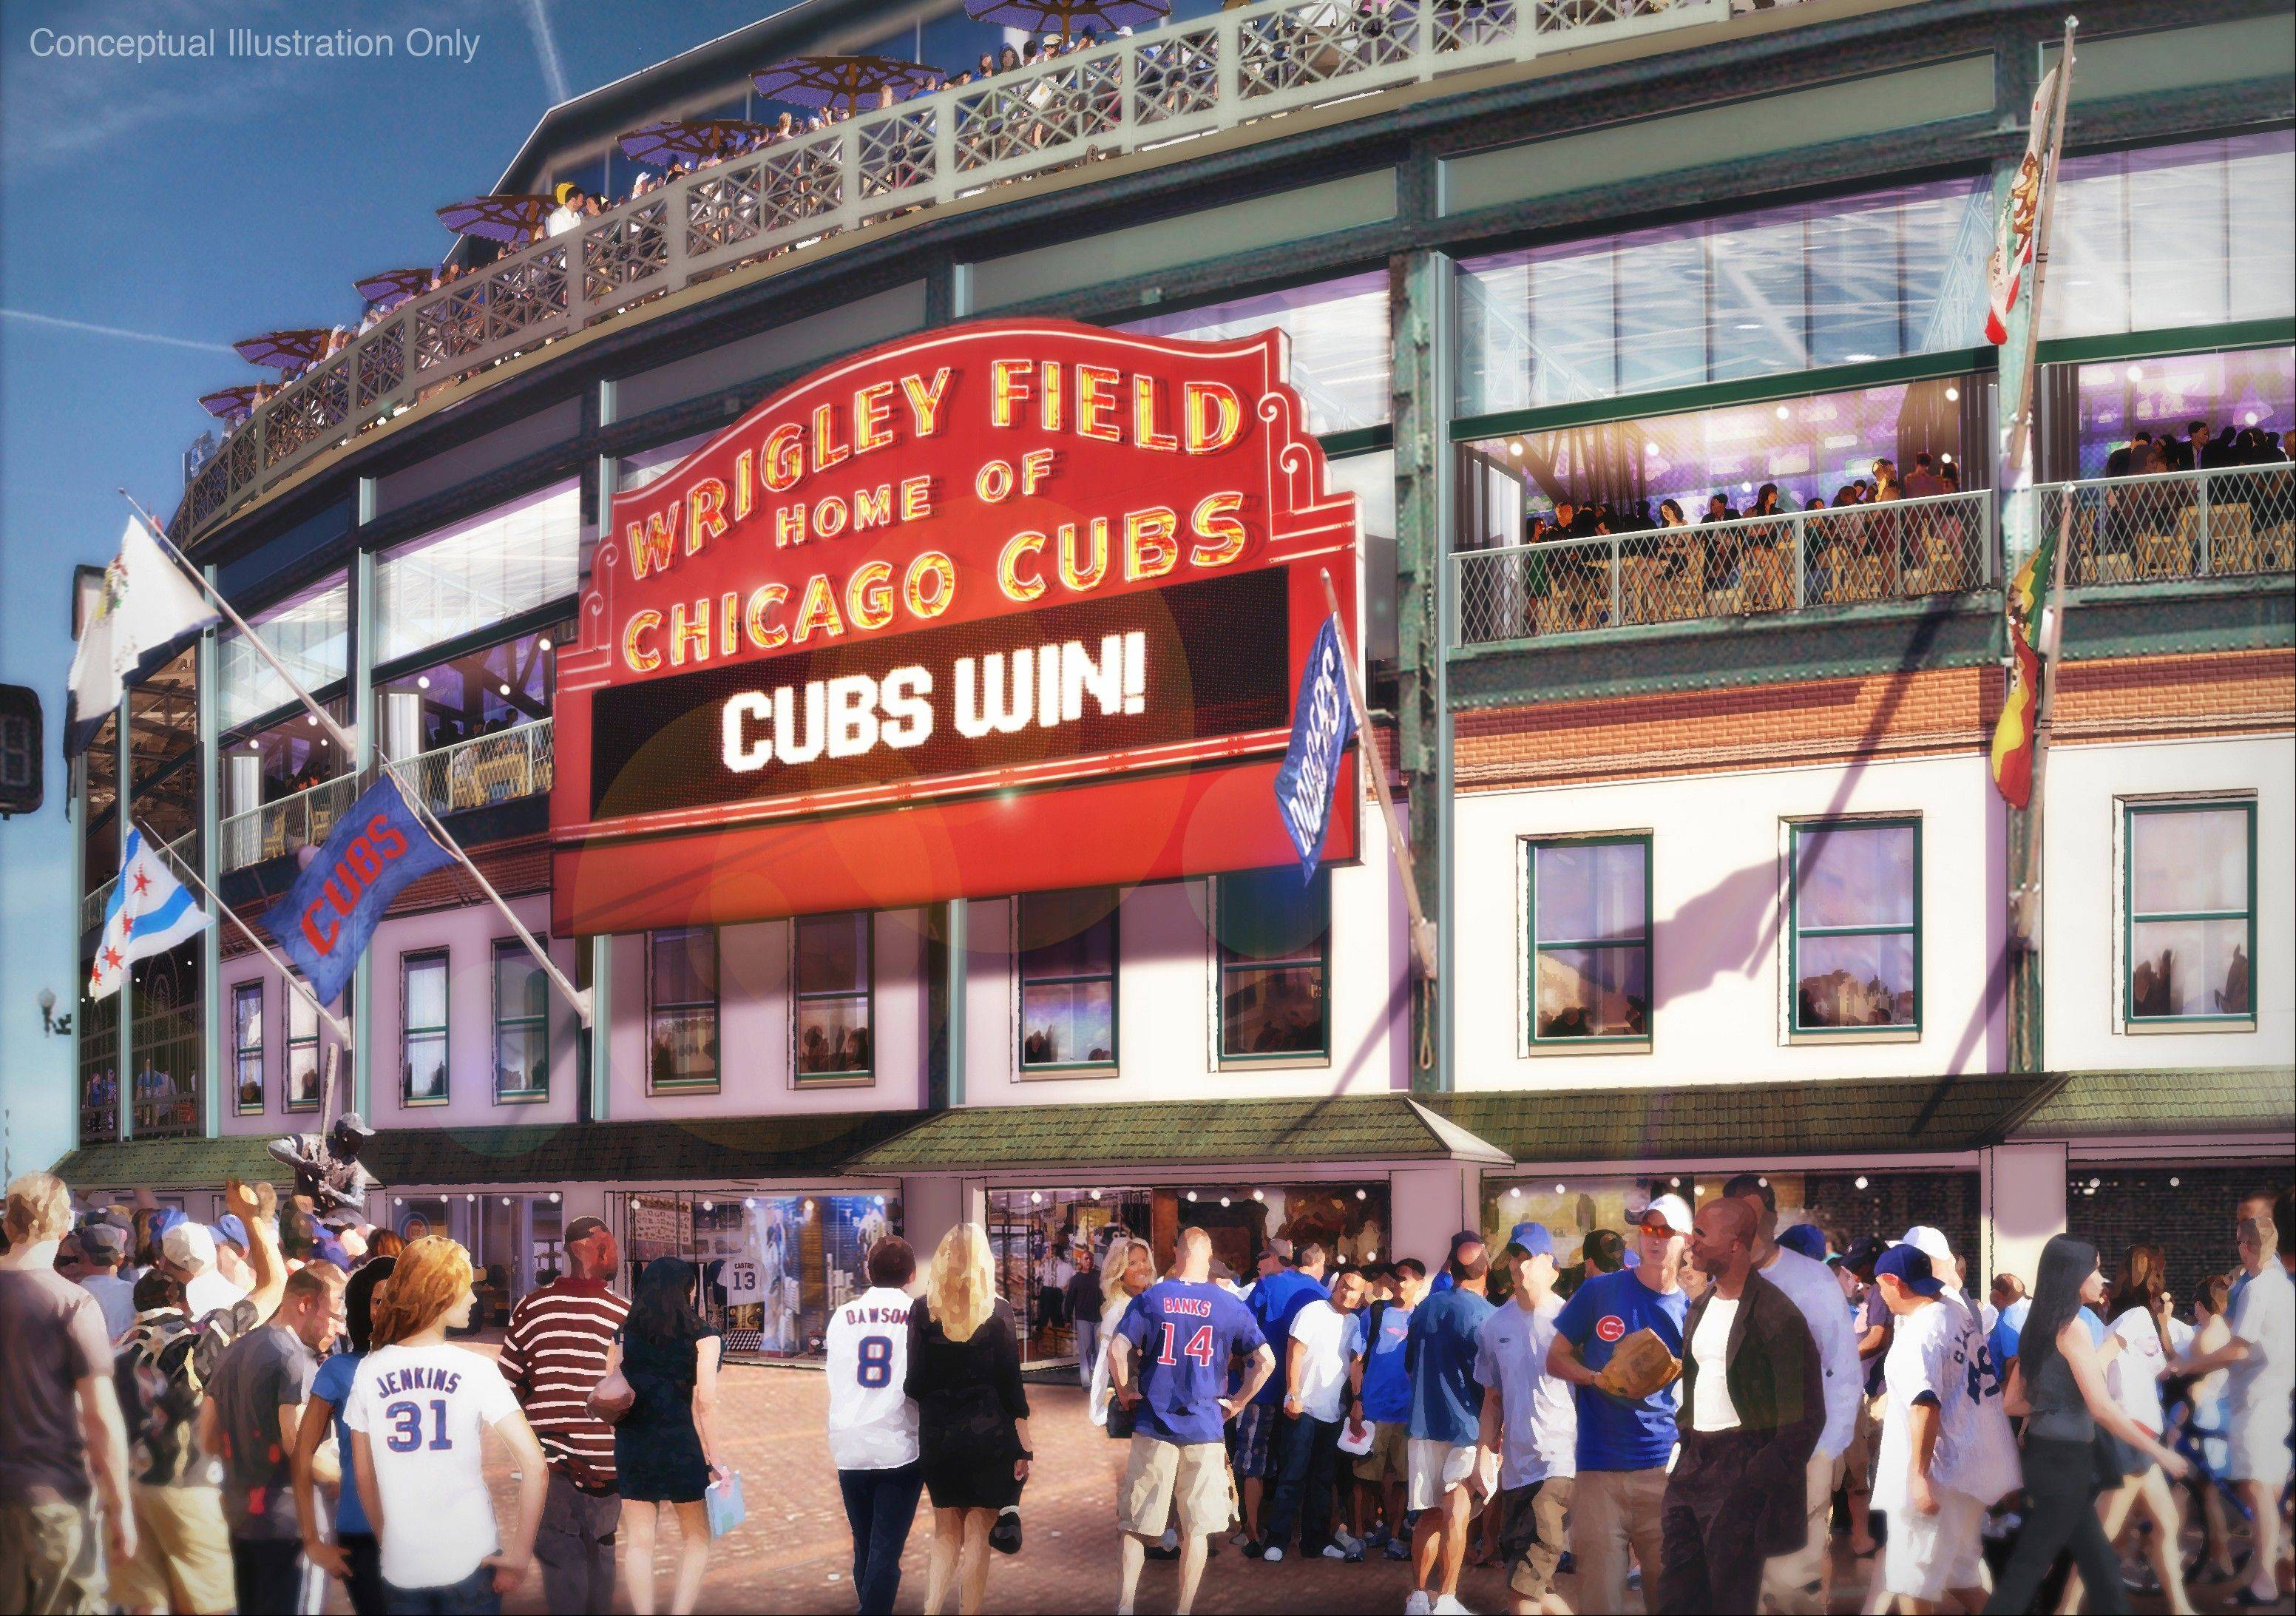 Images of the proposed renovation of Wrigley Field